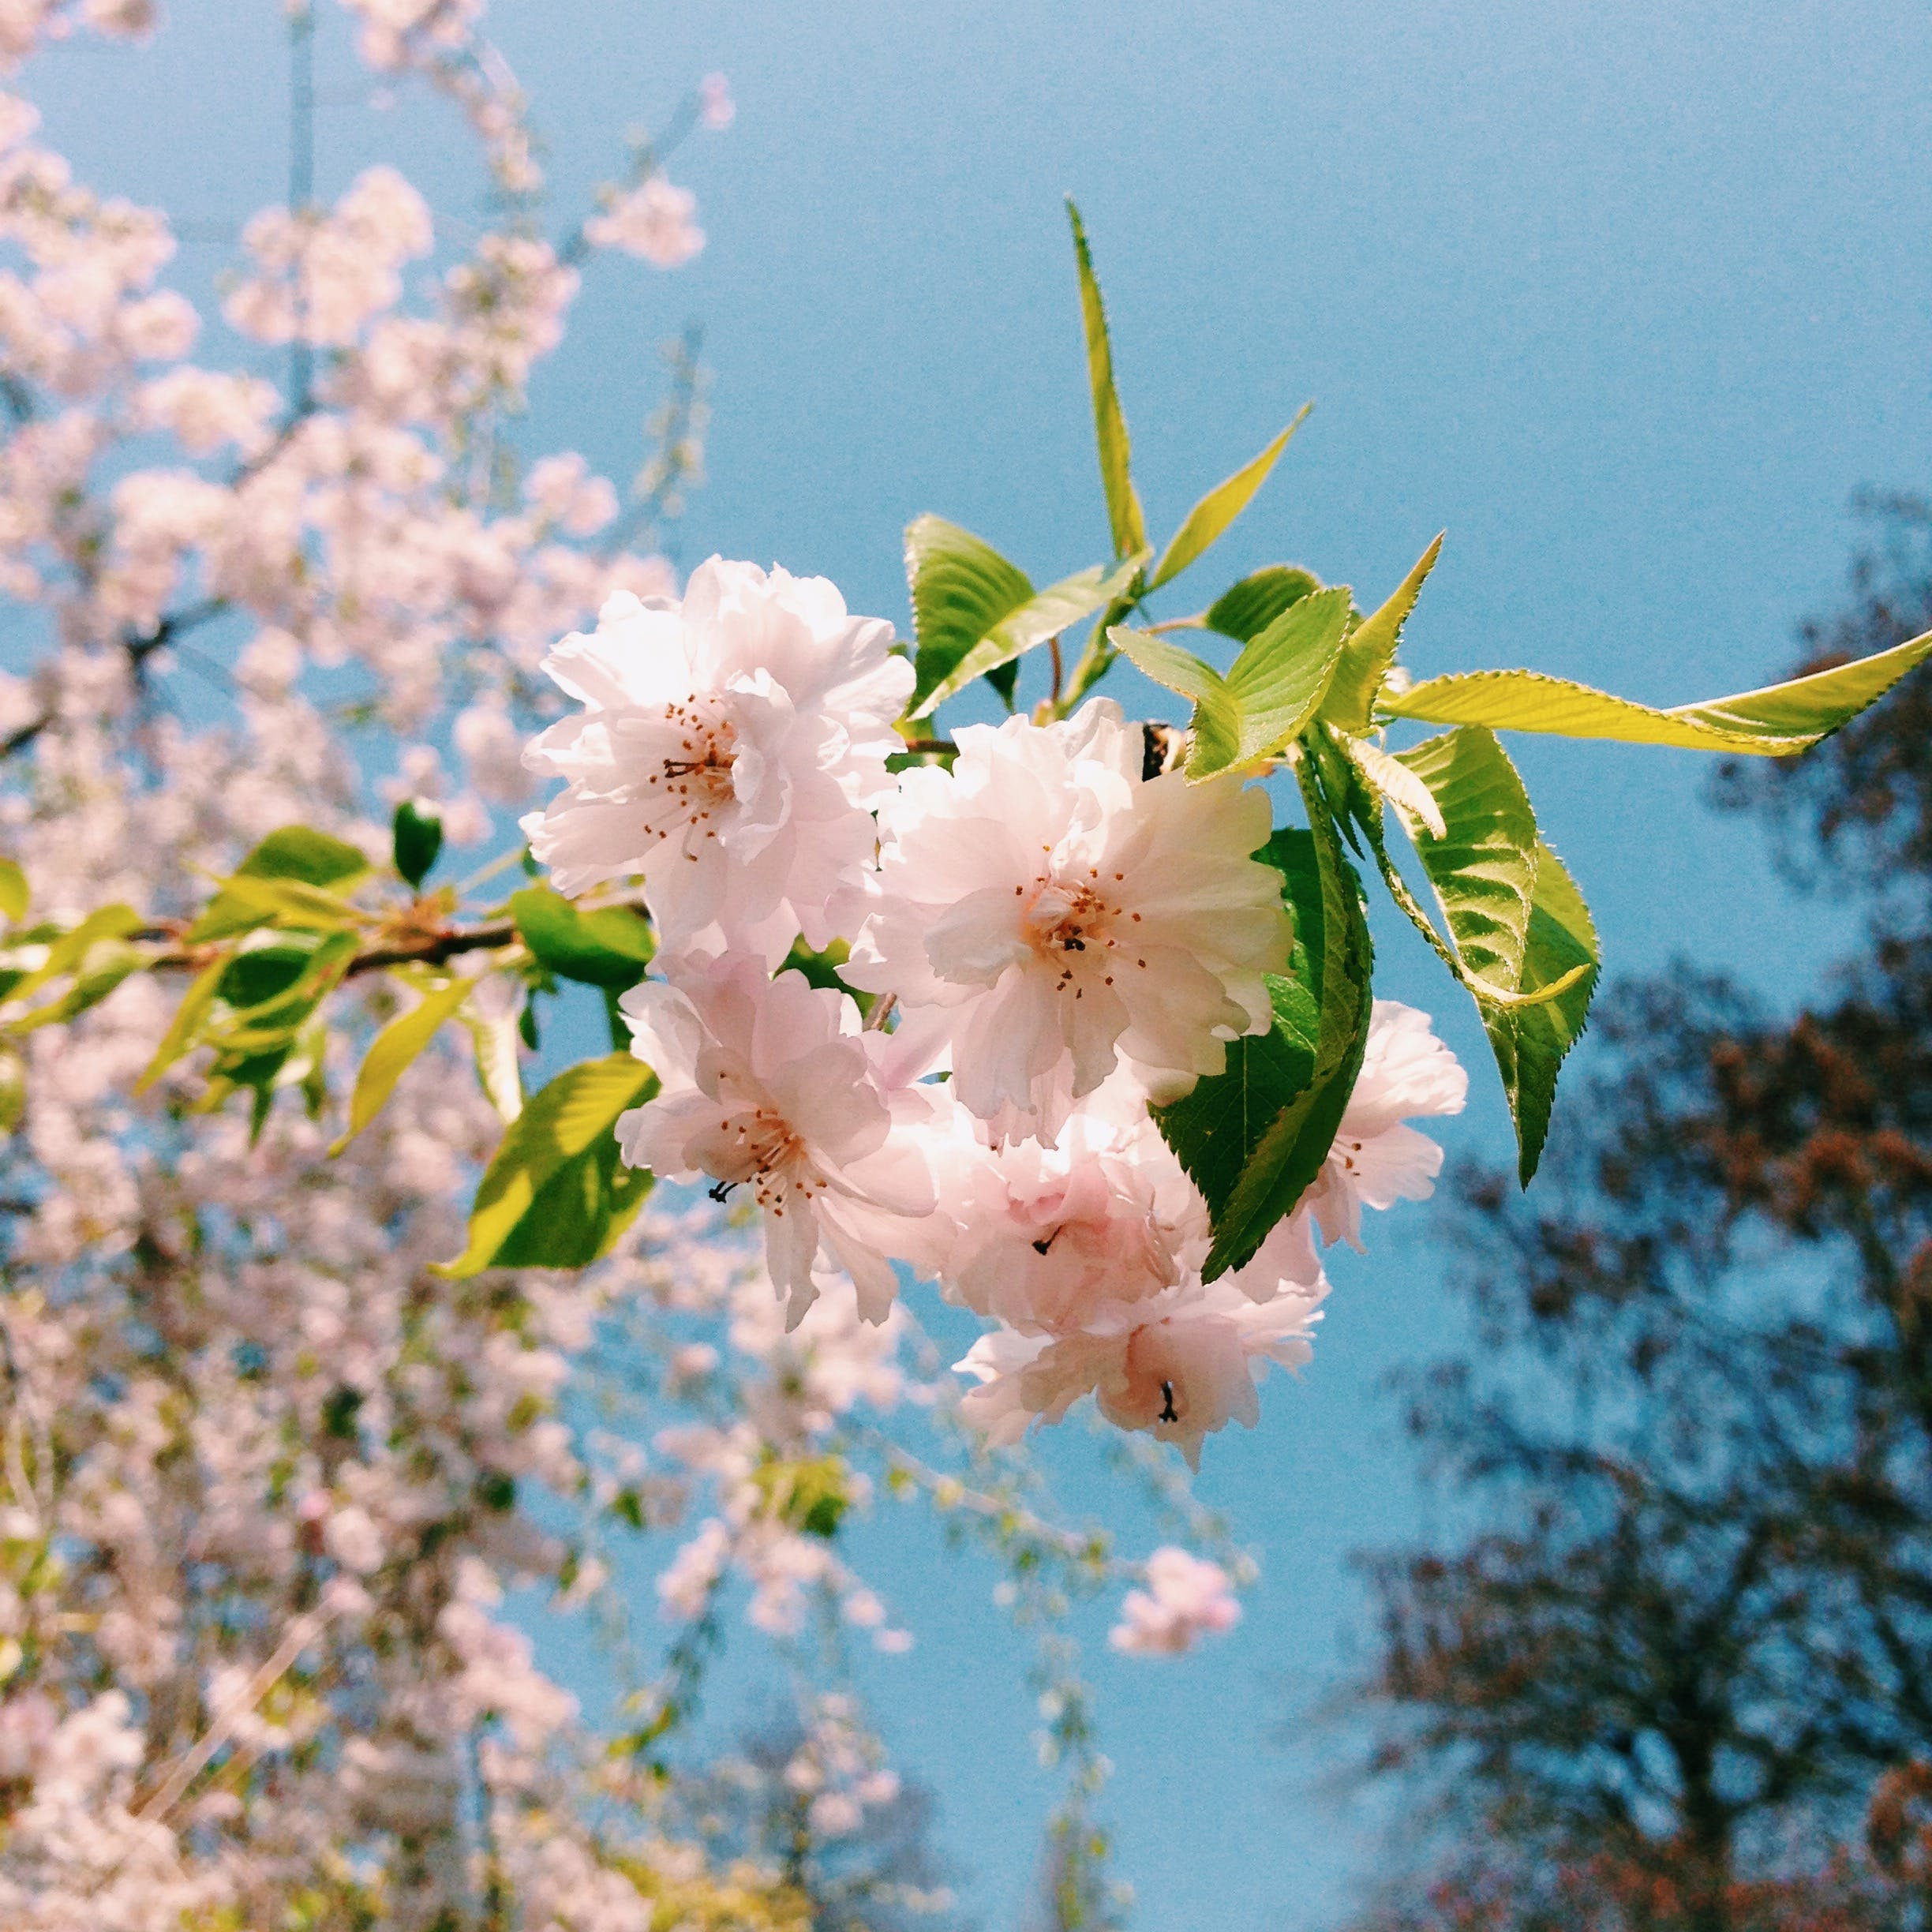 beautiful flowers, blossoms, nature